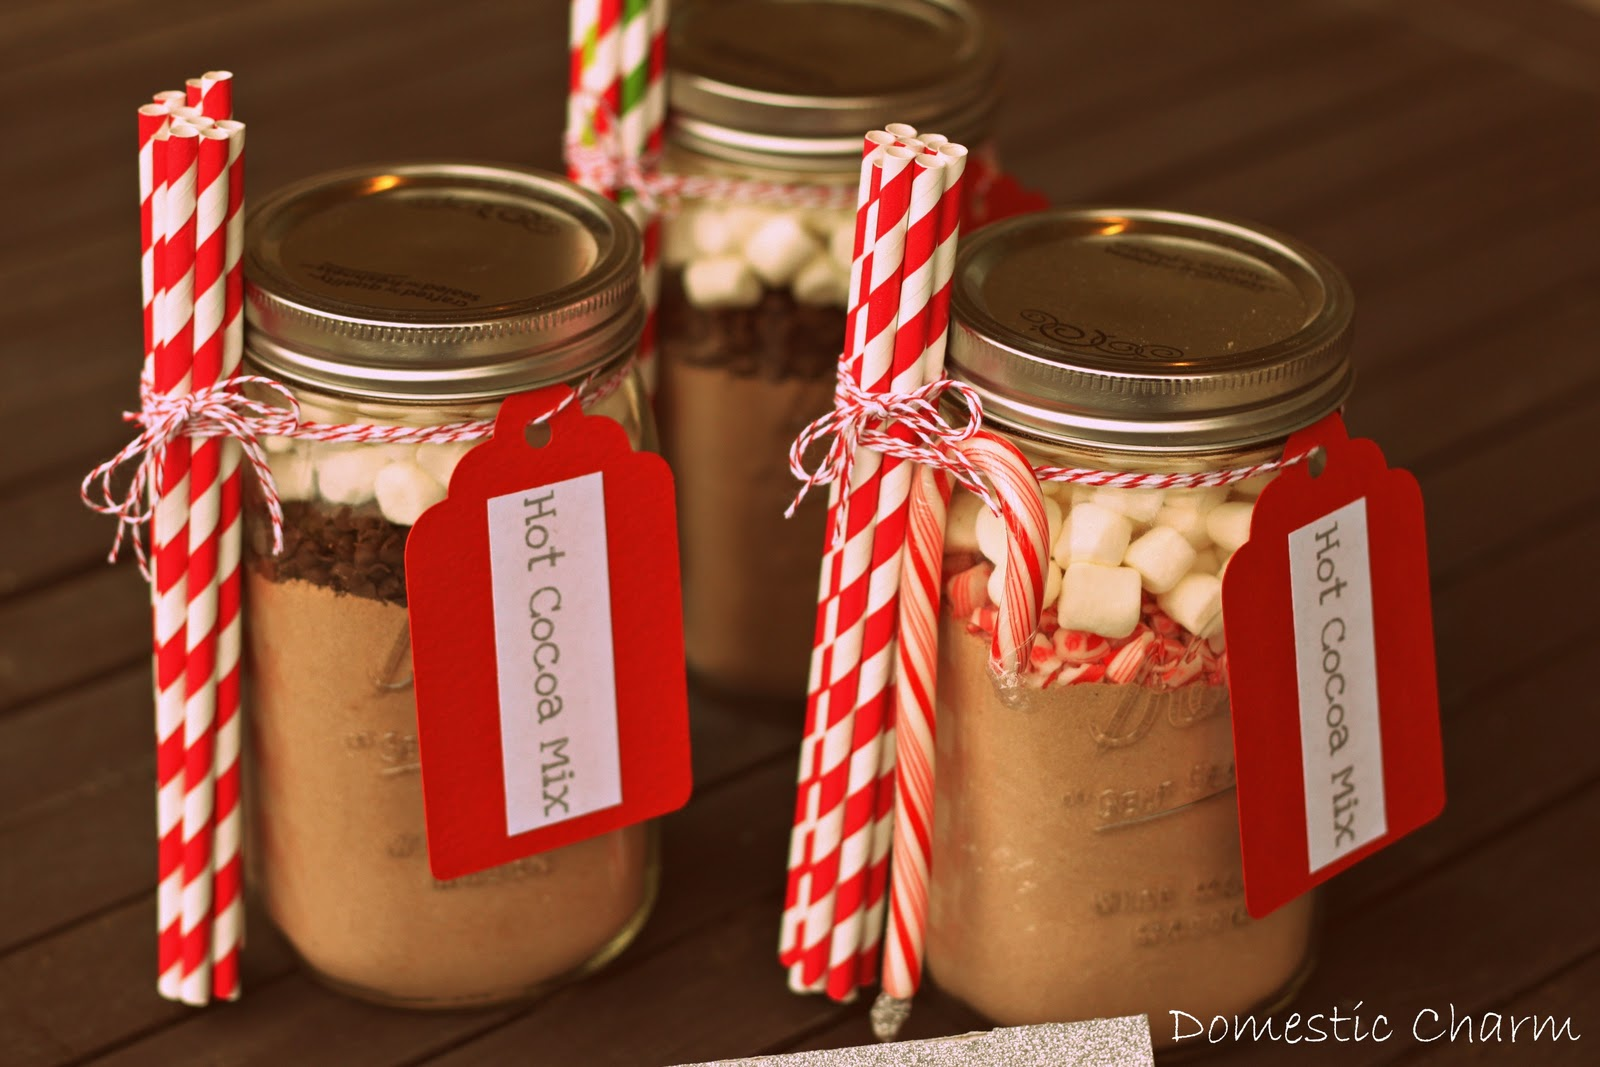 Domestic Charm: Hot Cocoa in a Jar